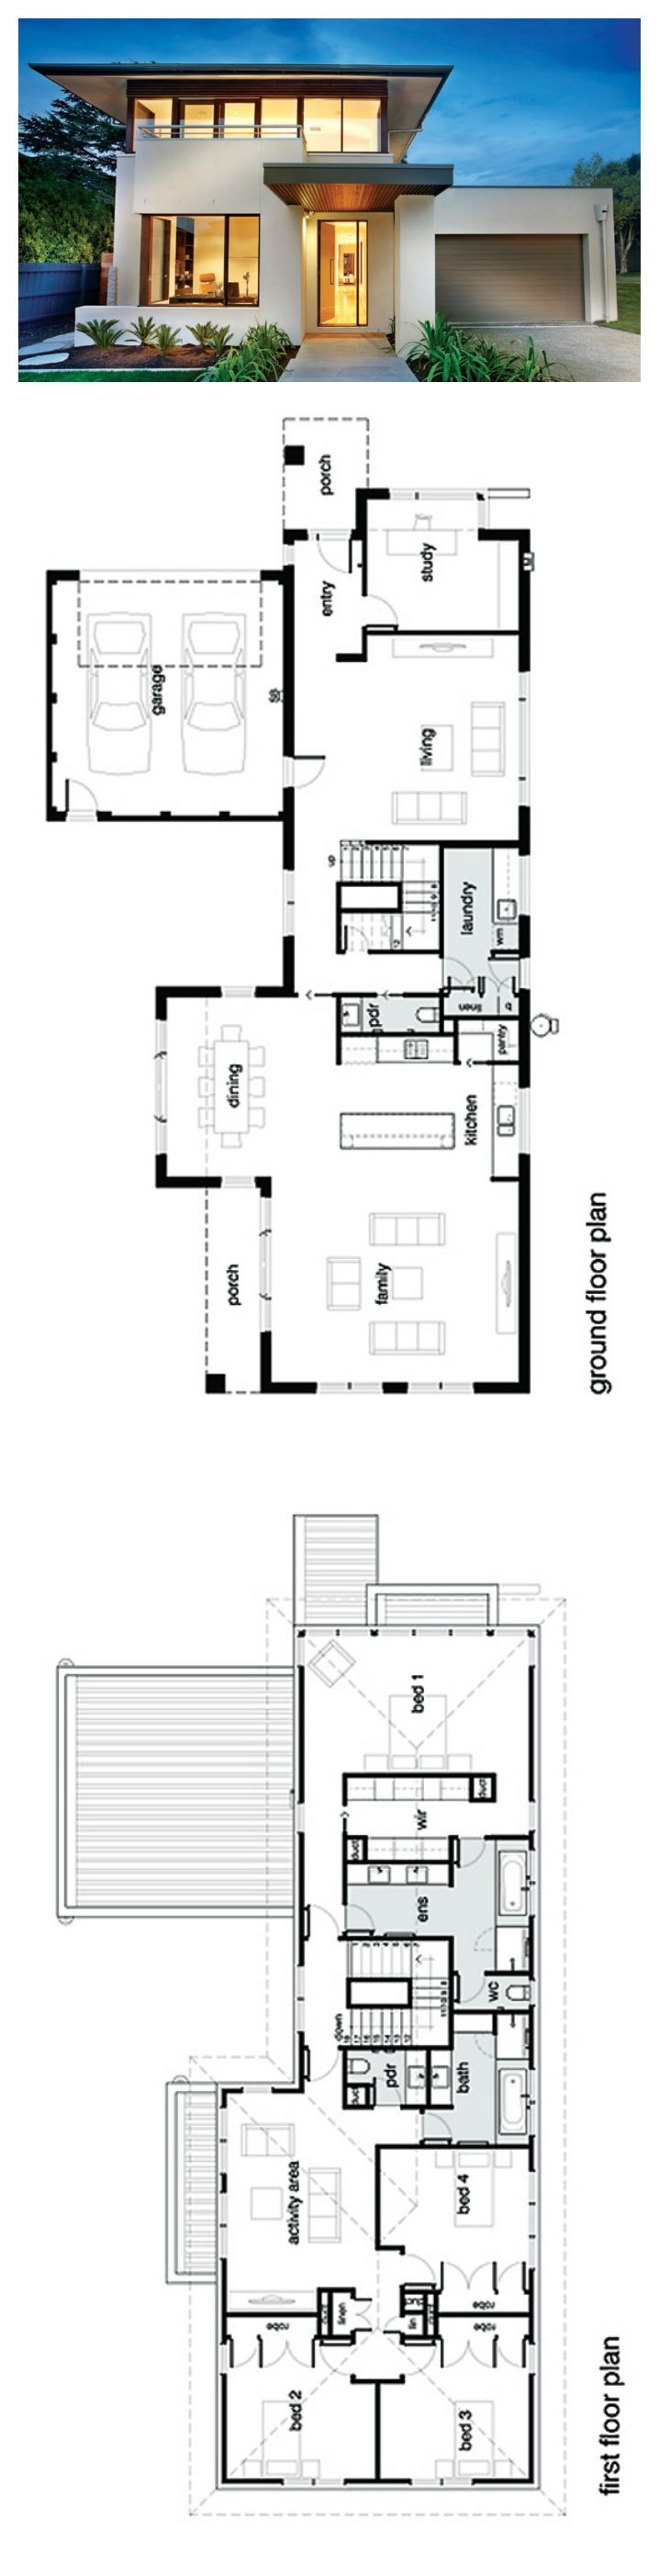 The 25 best ideas about modern house plans on pinterest for Modern 2 bedroom home designs